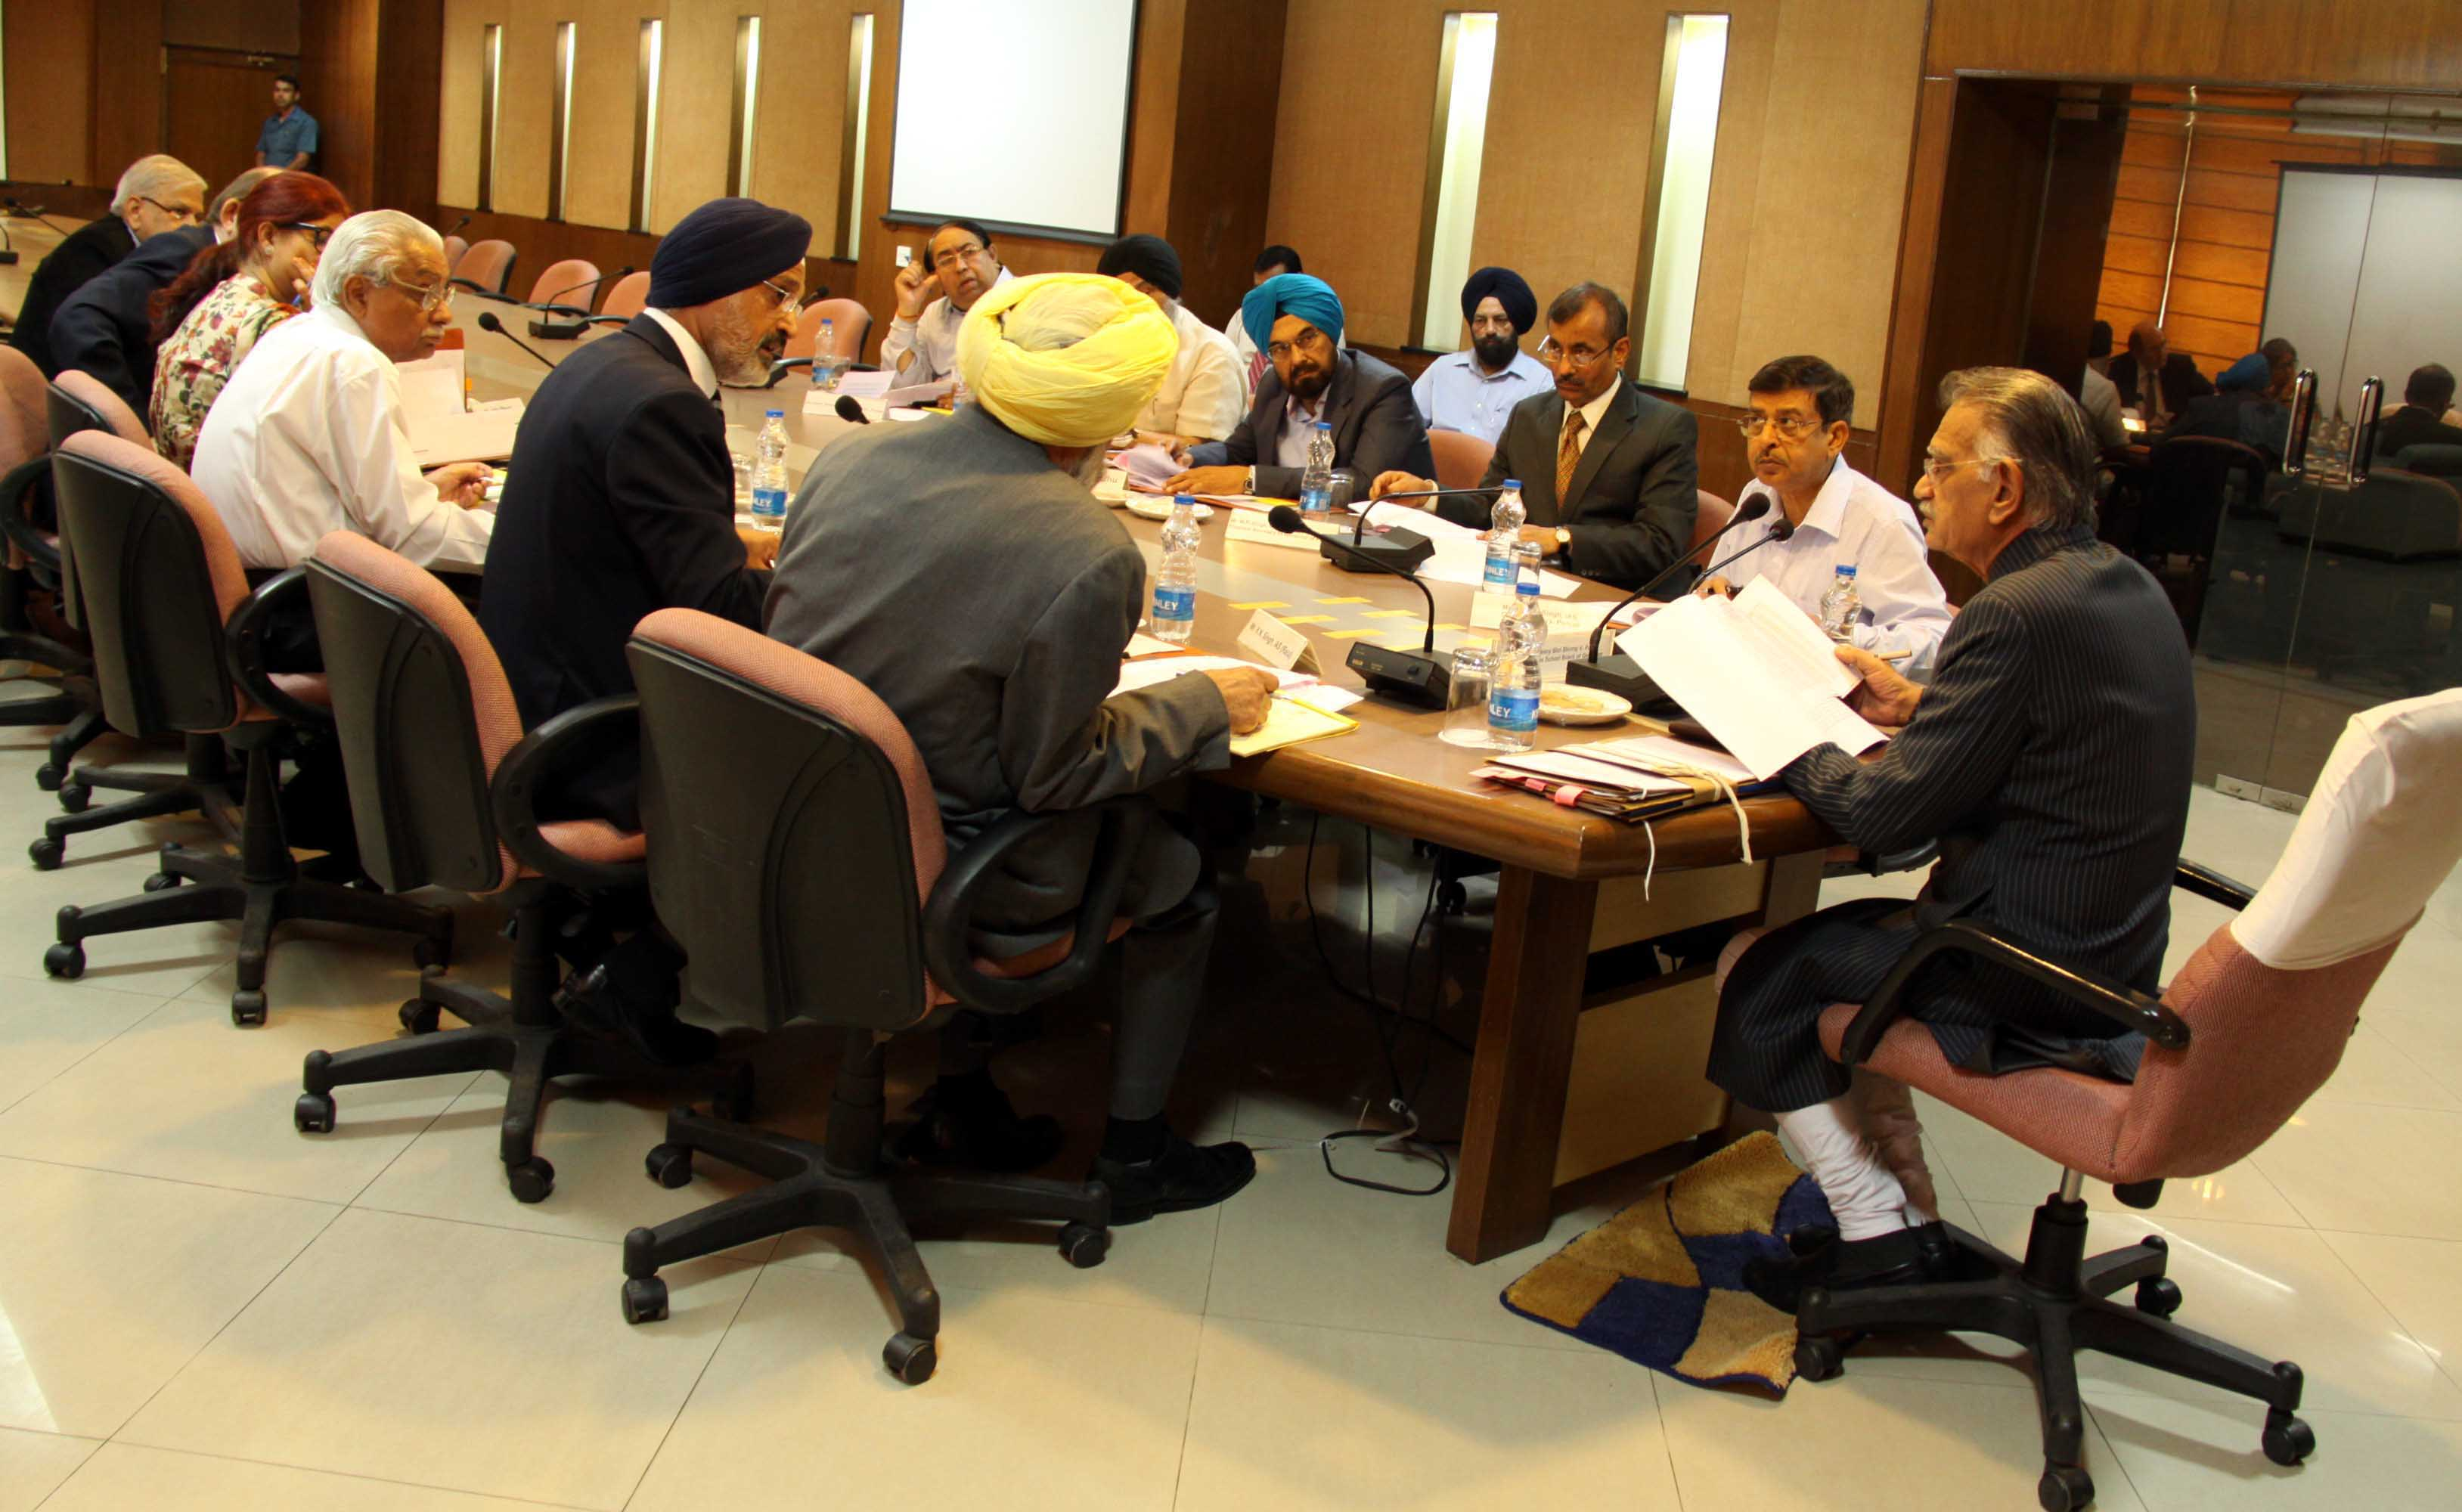 The Punjab Governor and Administrator, UT, Chandigarh, Mr. Shivraj V. Patil presiding over a meeting of Governing Body of Punjab Public School Nabha at Chandigarh on 15.04.2014.